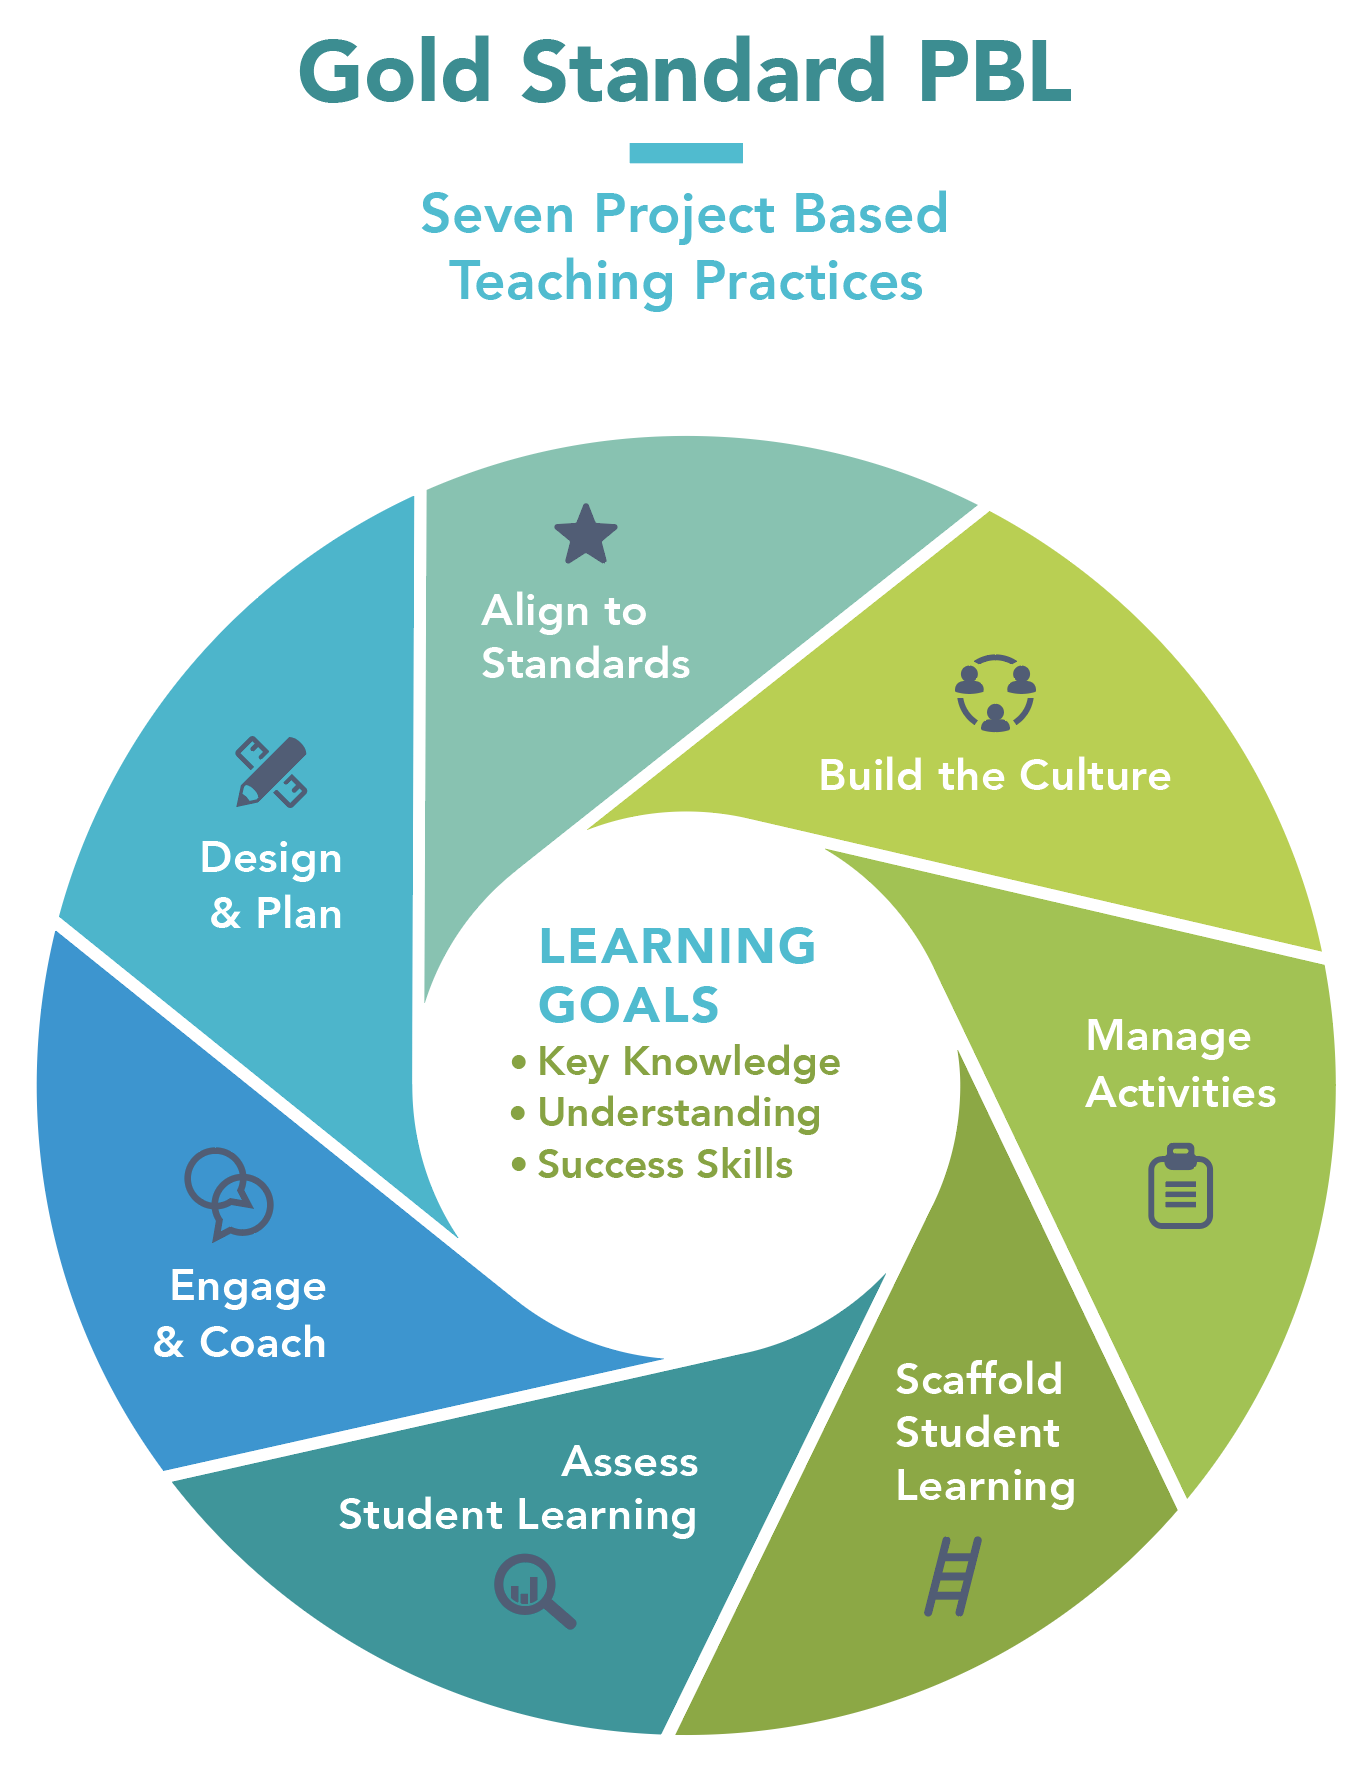 WHAT Gold Standard PBL Project Based Teaching Practices